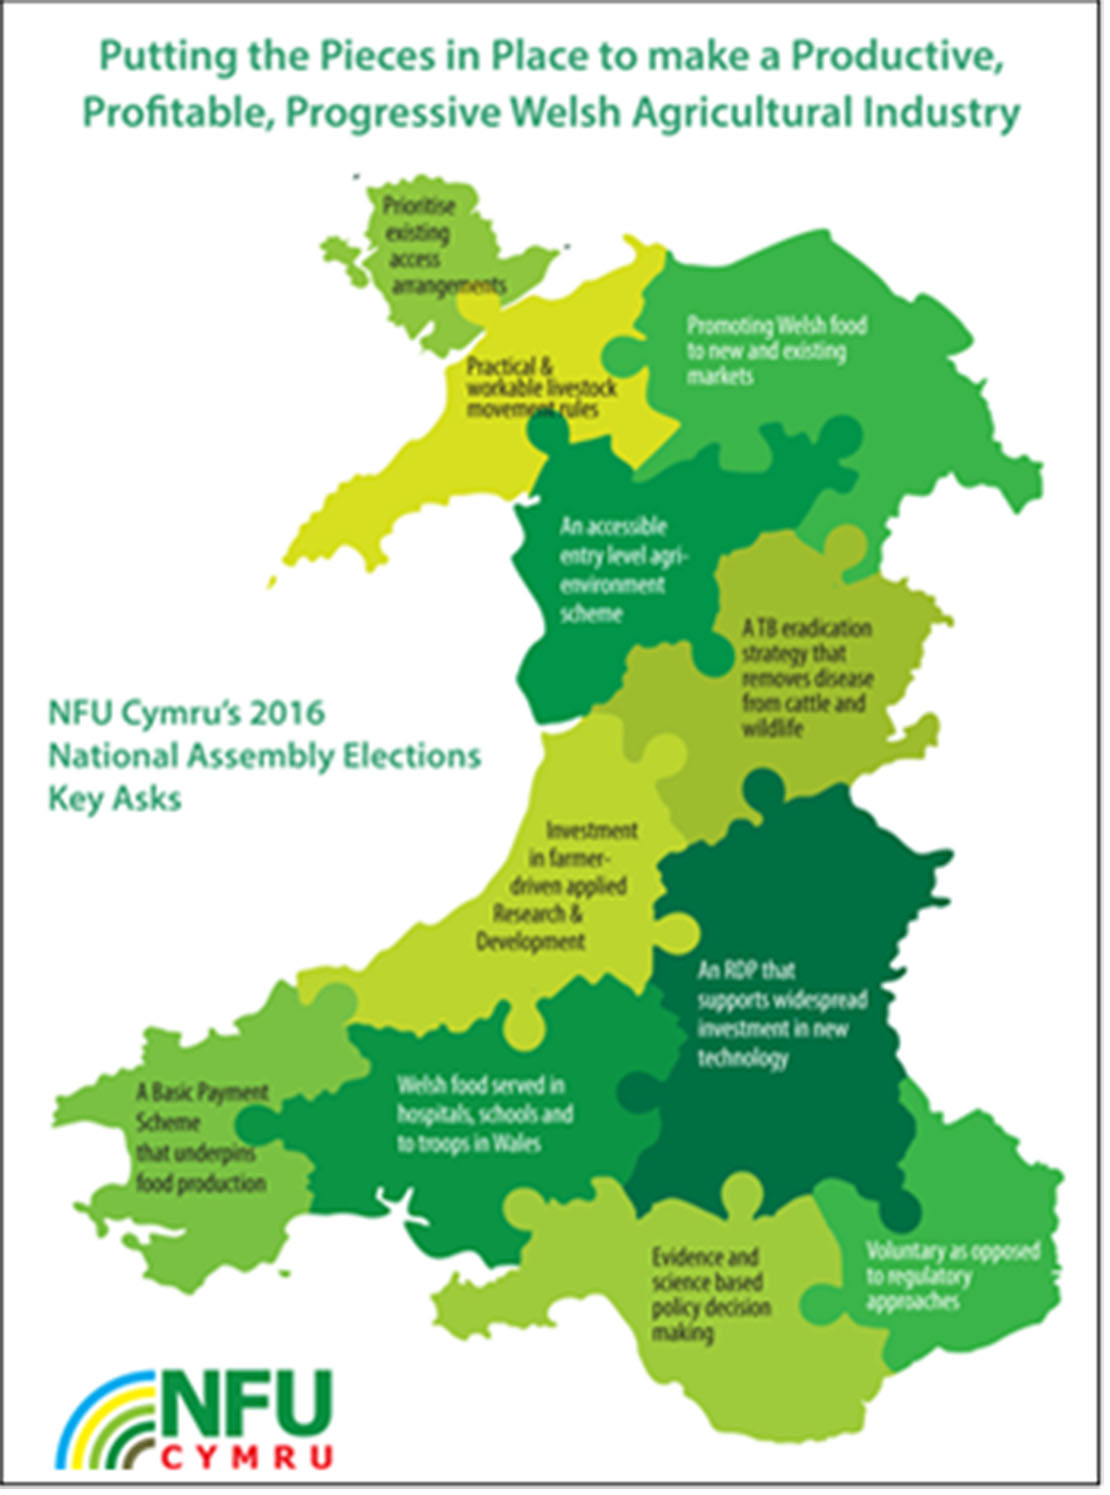 The key asks from NFU Cymru